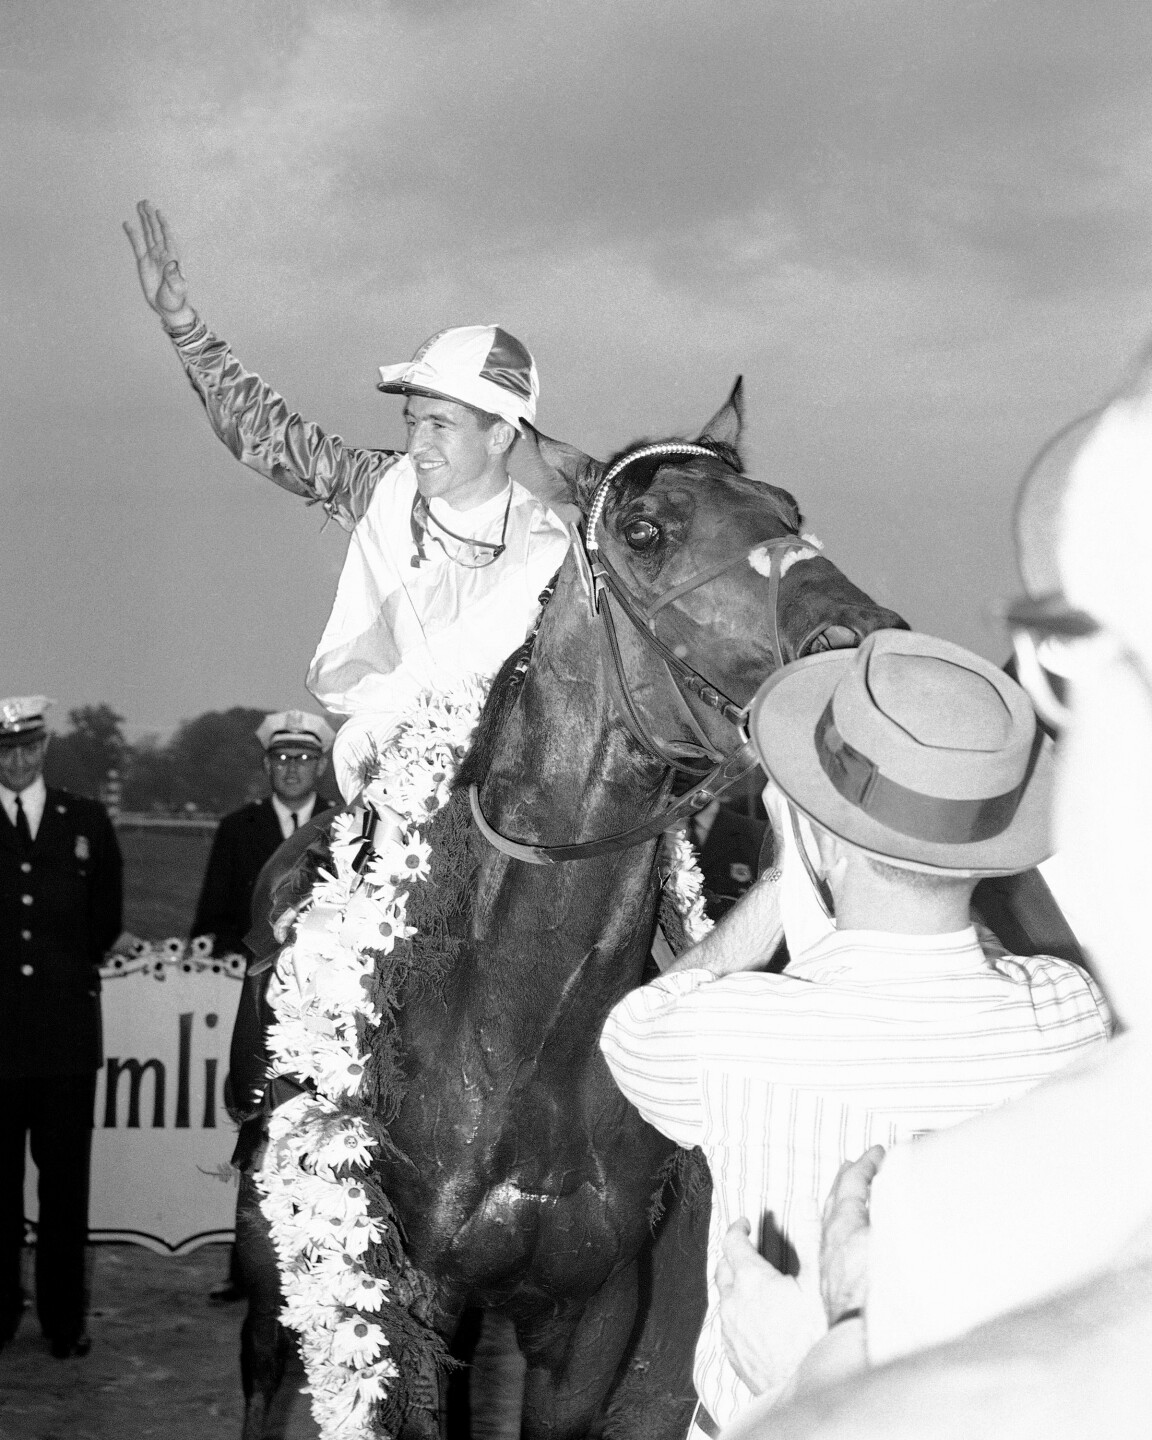 Robert Ussery with horse Bally Ache after winning 1960 Preakness Stakes